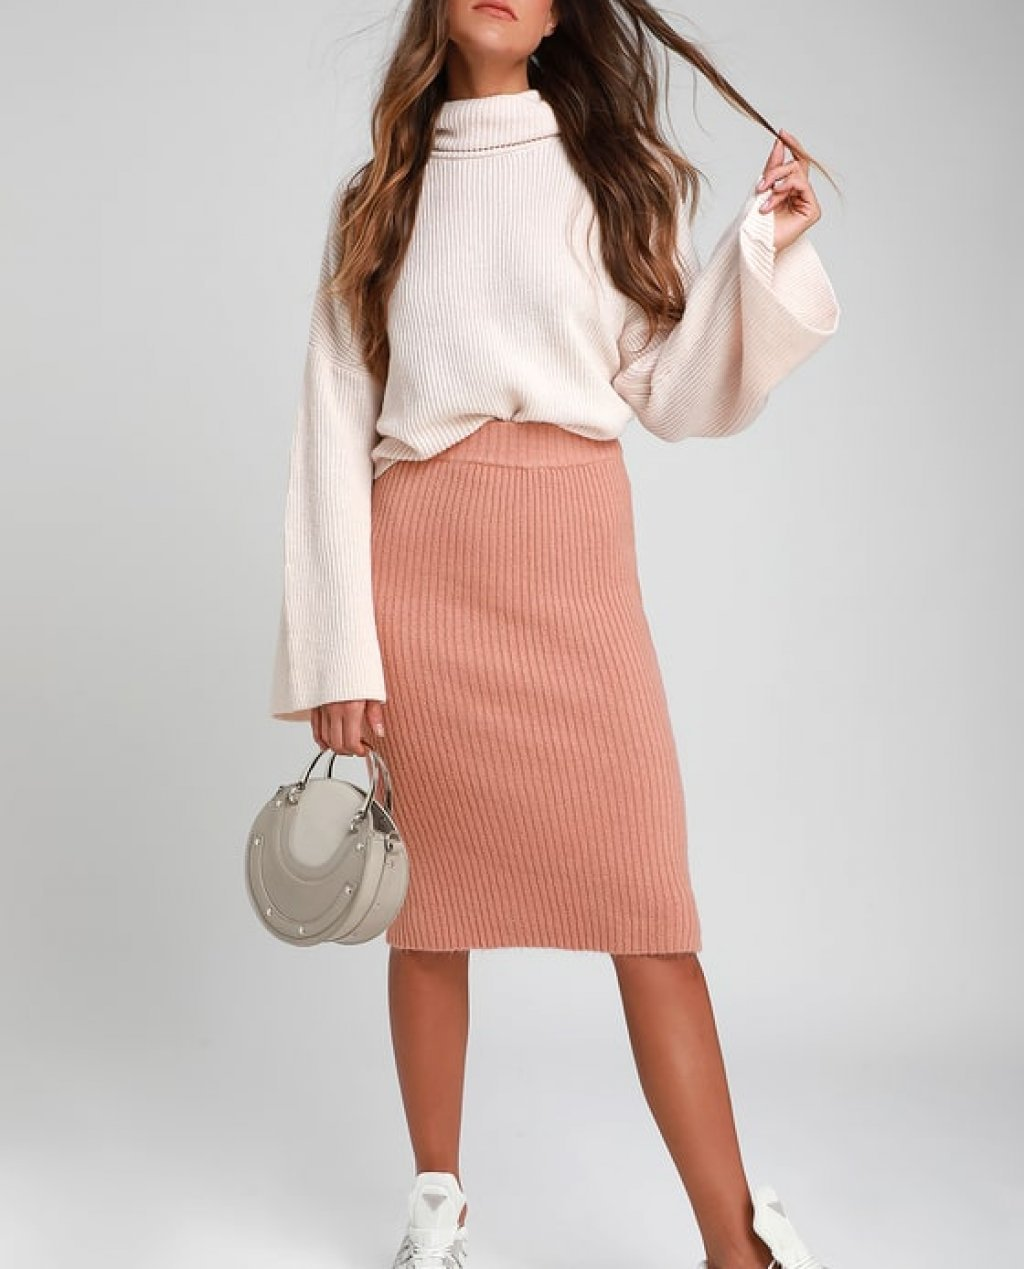 Hallis Blush Pink Ribbed Knit Midi Skirt